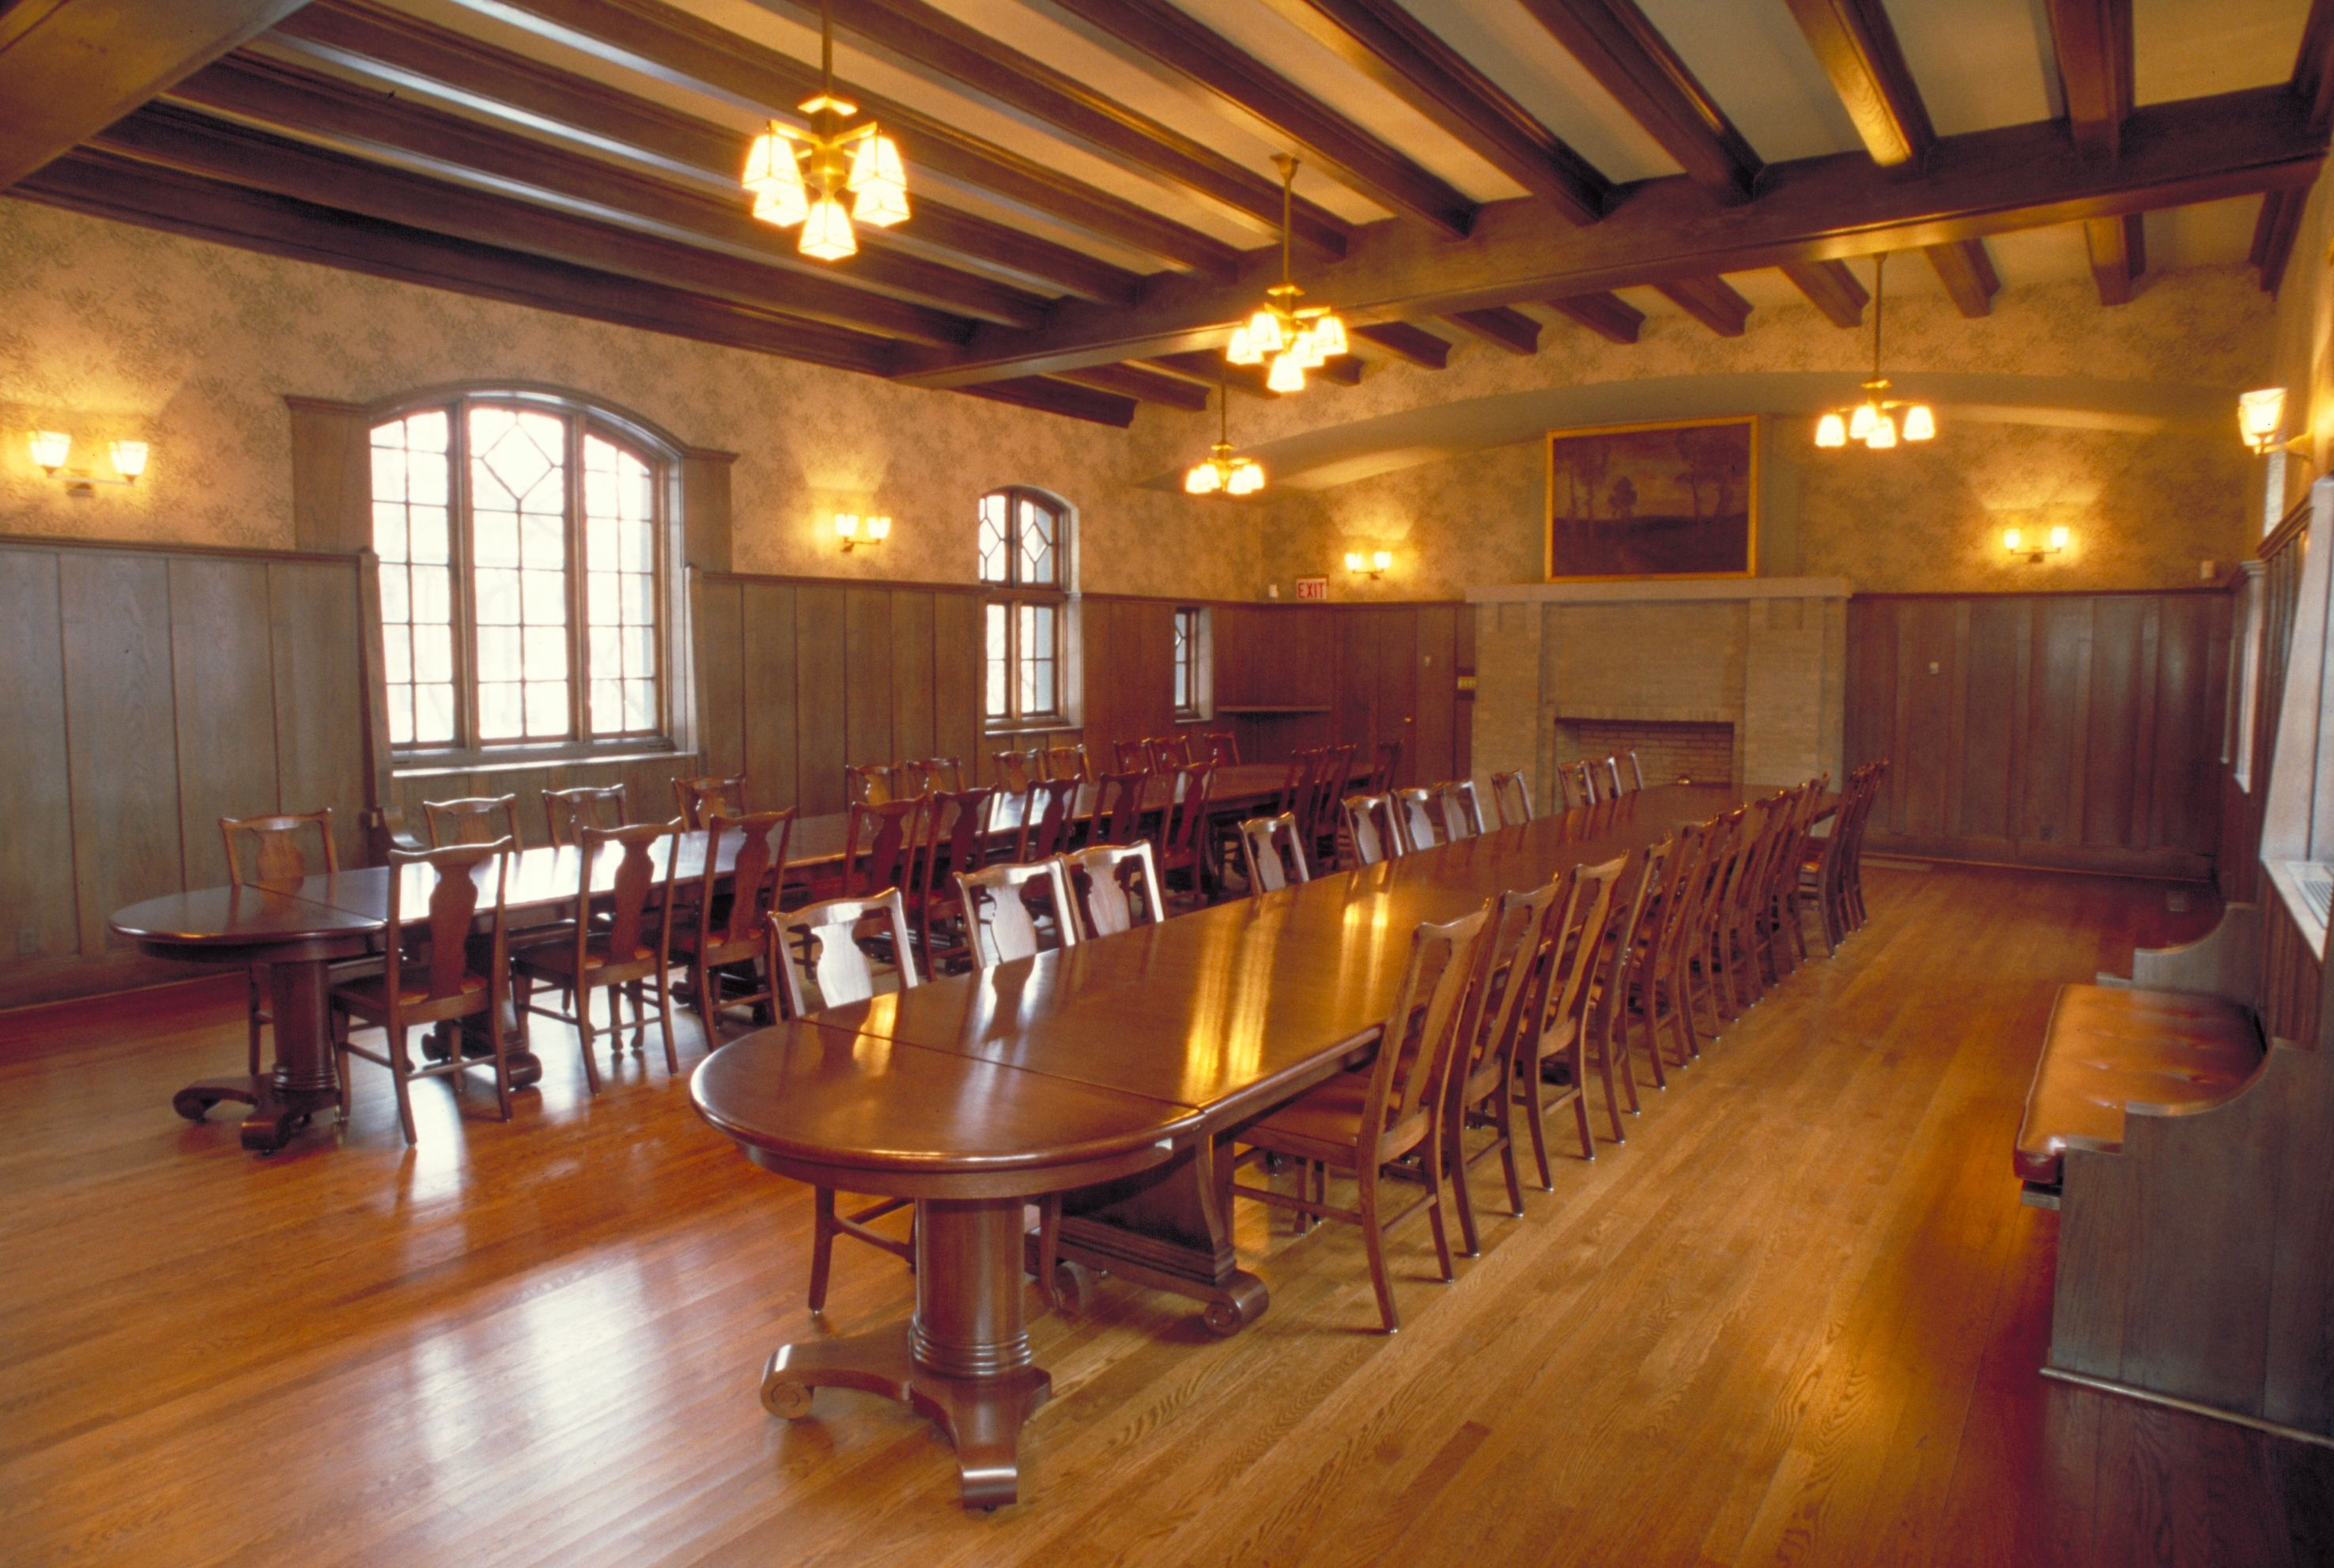 The Residents' Dining Hall of the Jane Addams HullHouse